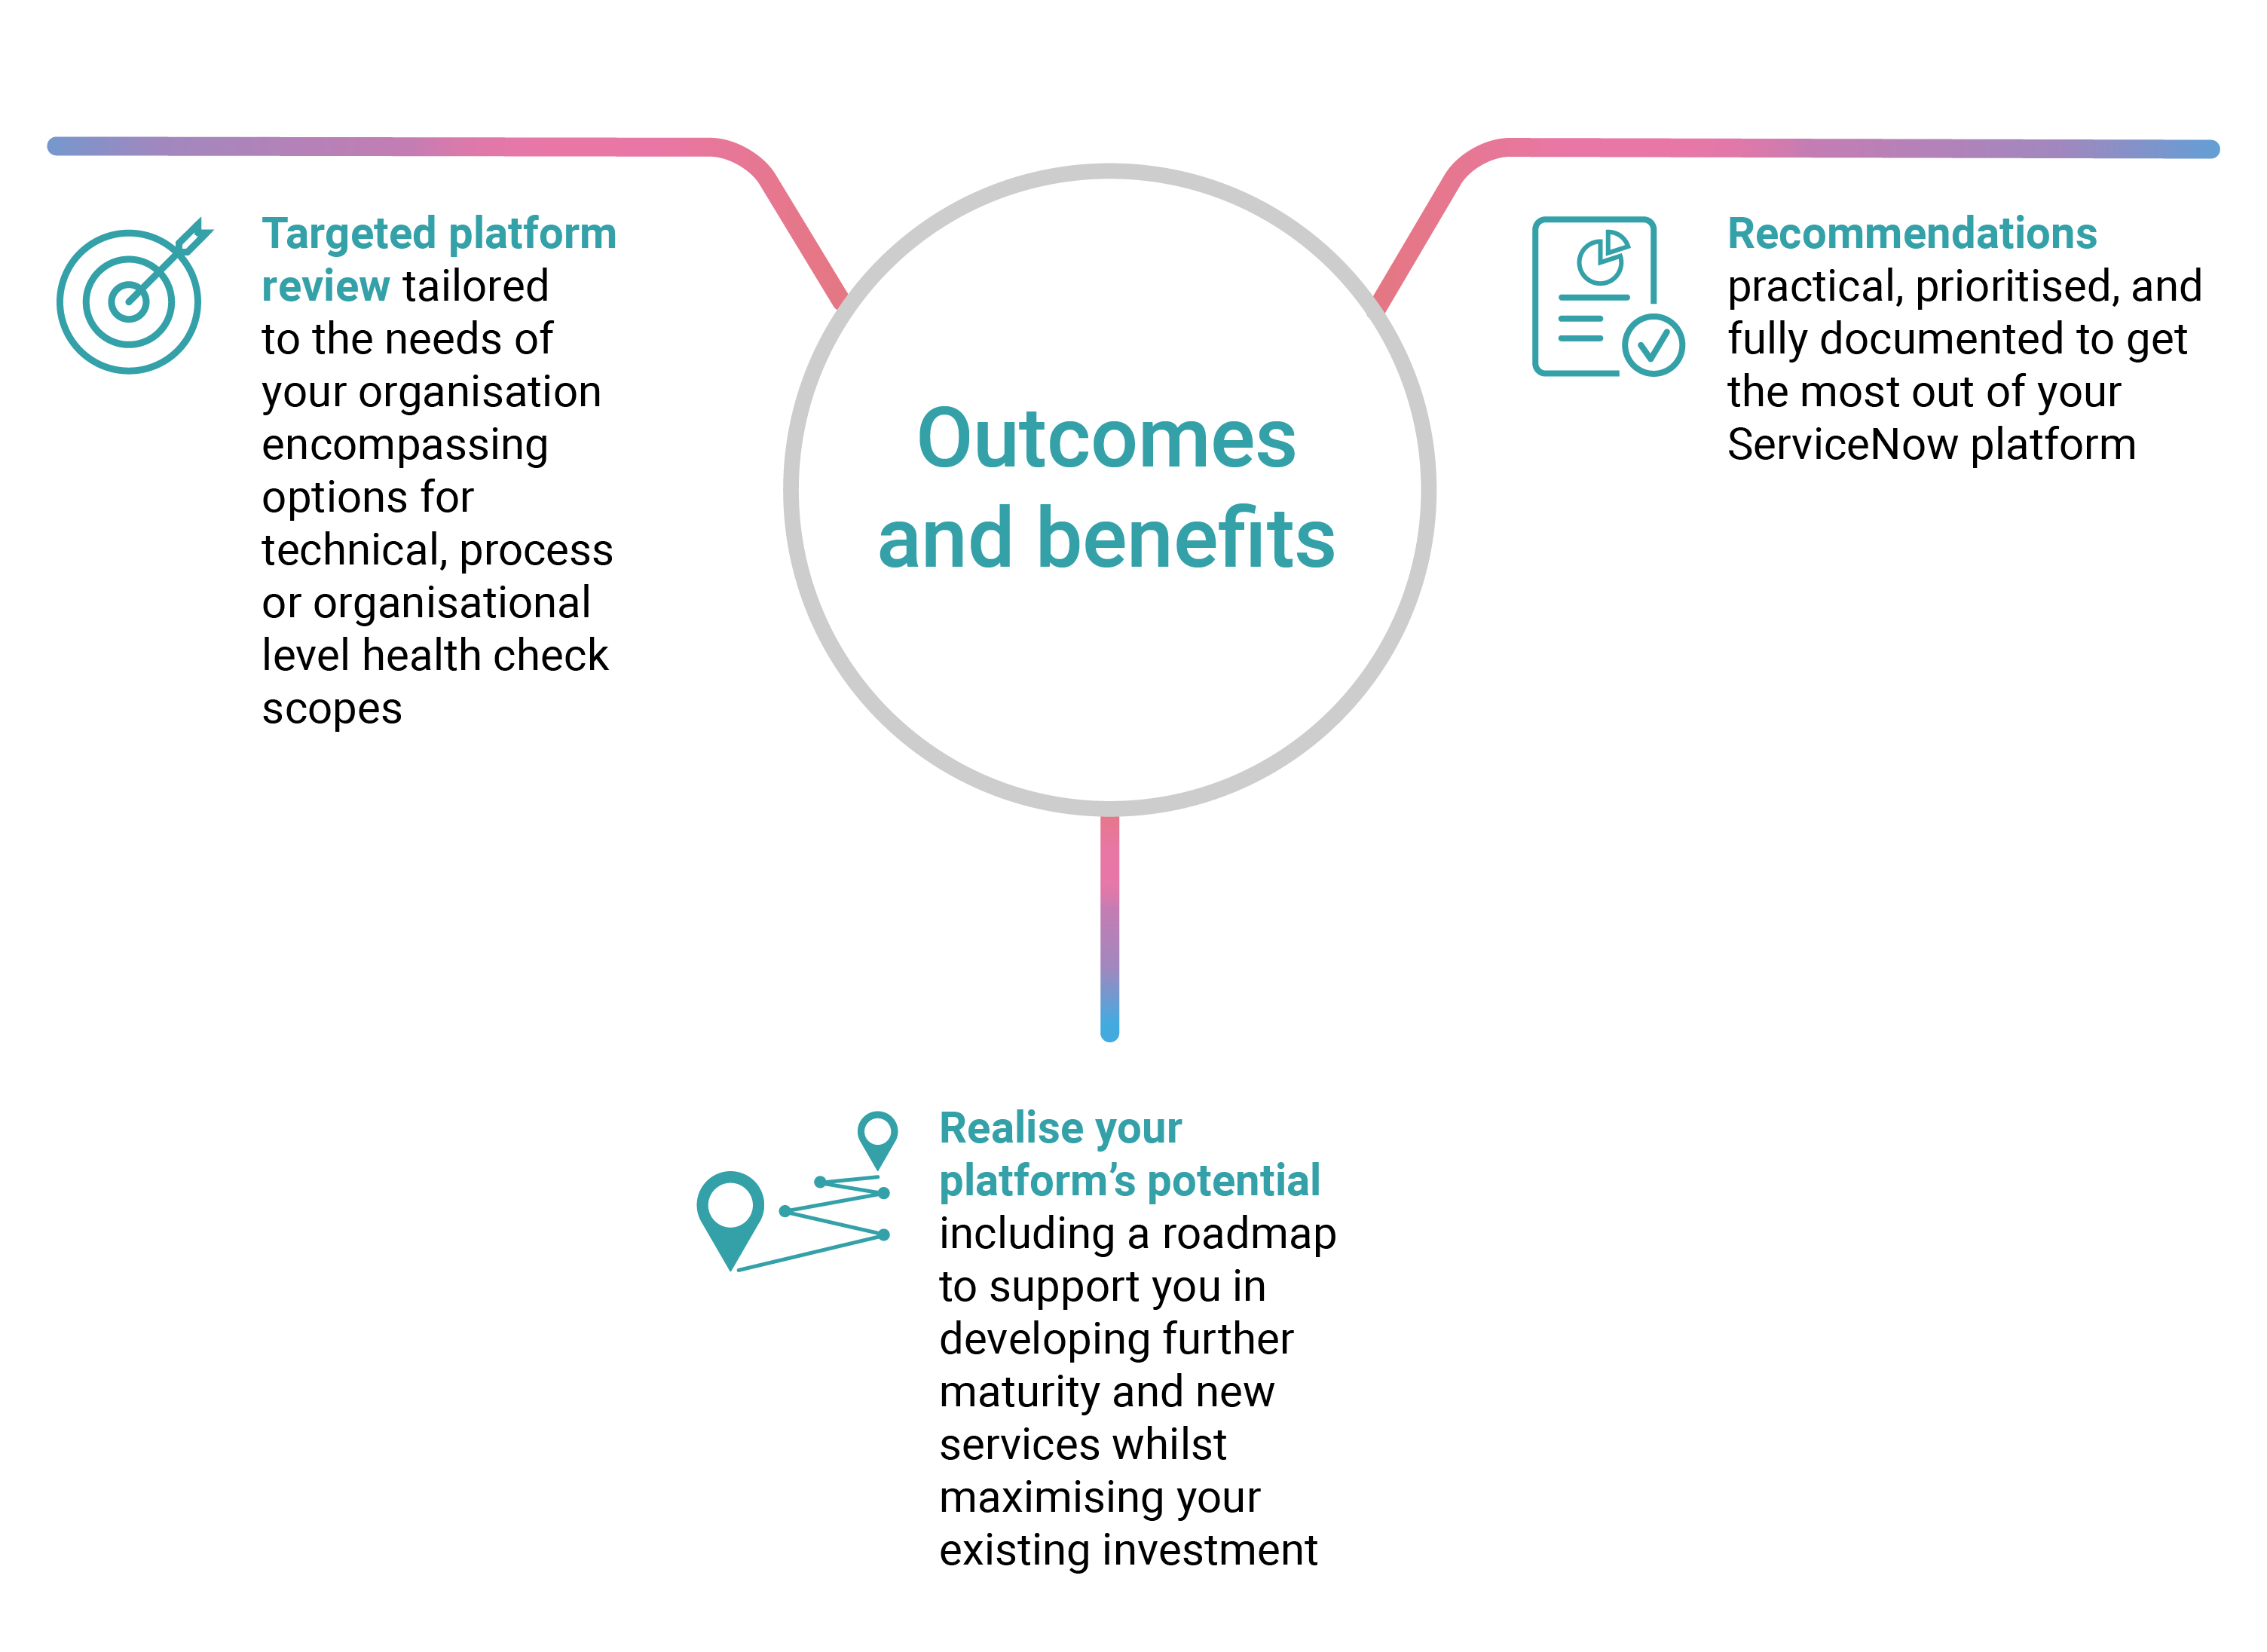 Healthcheck Outcomes and Benefits diagram